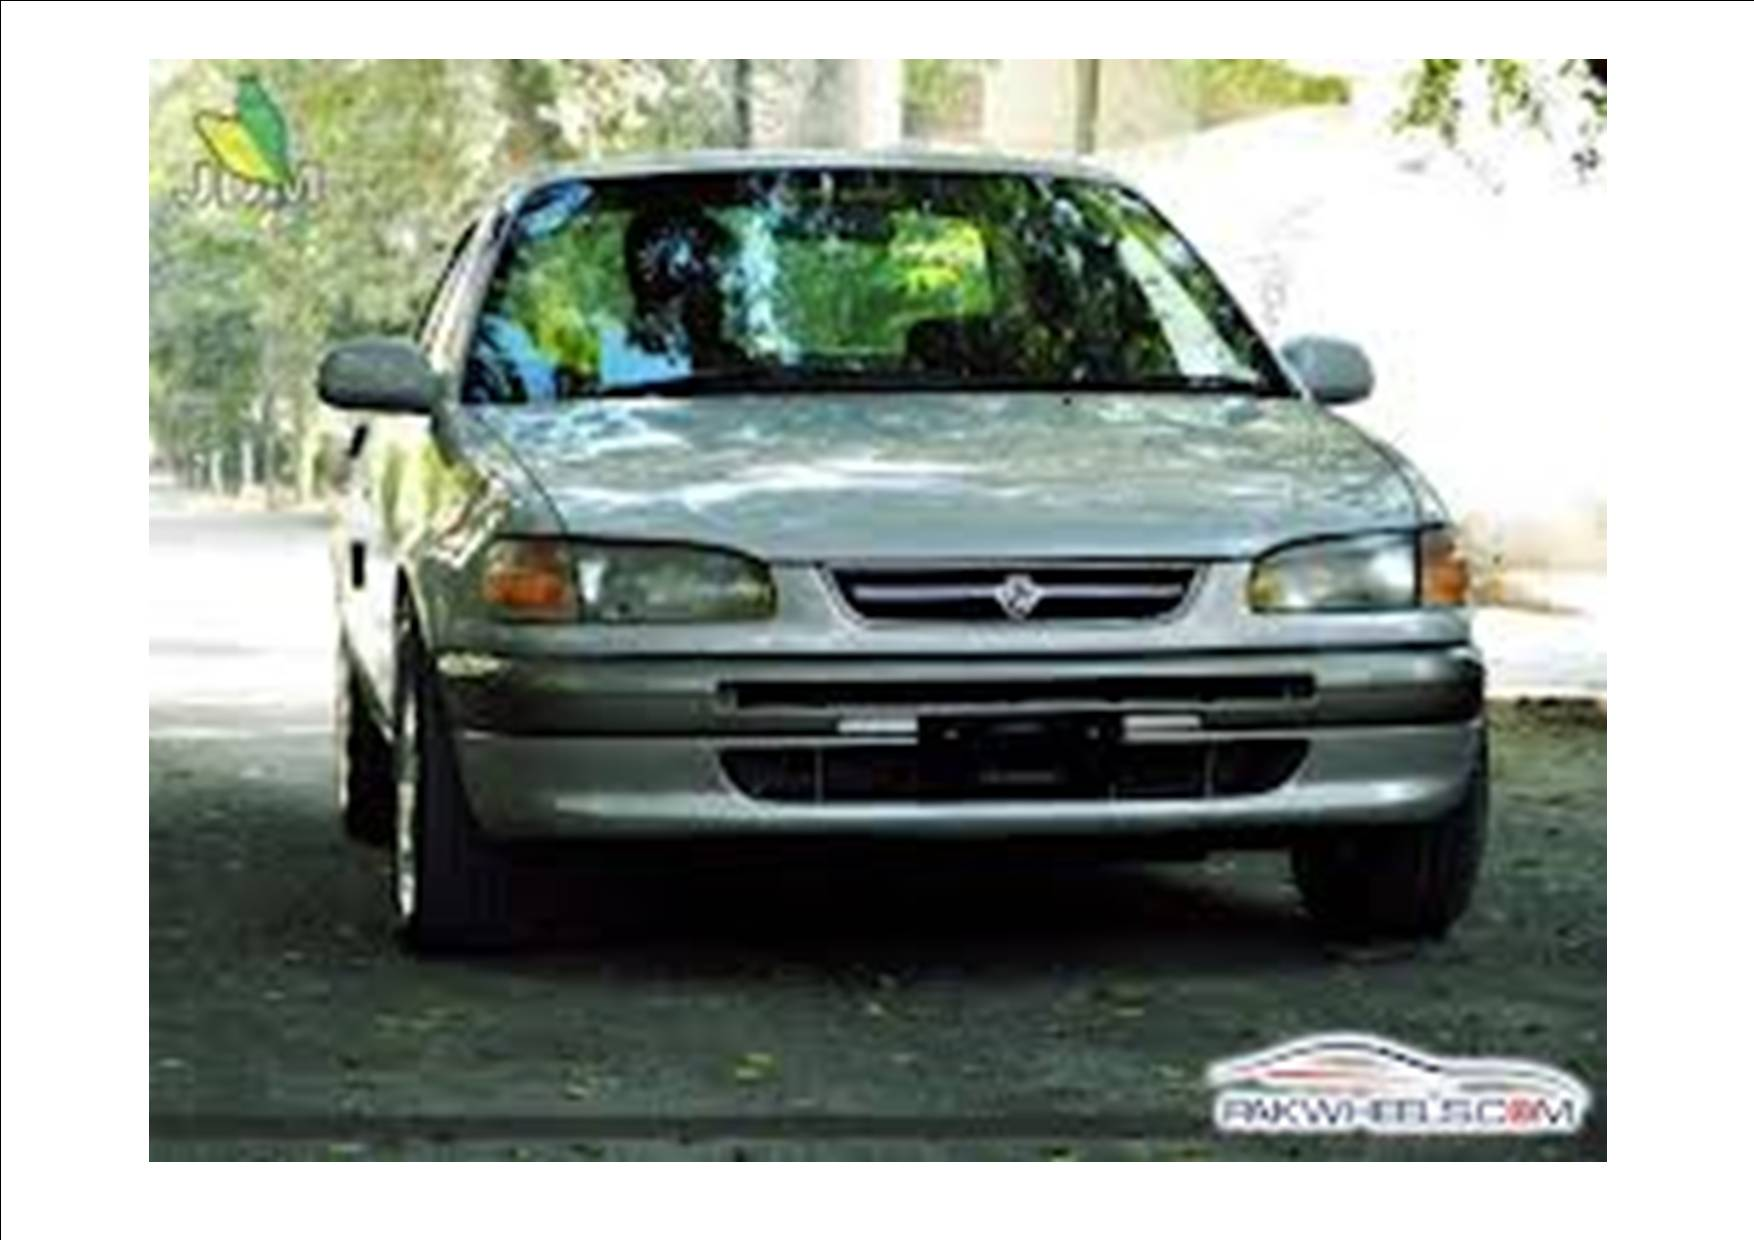 Listing all Parts for TOYOTA COROLLA 1995-1997 AE110 - API NZ - Auto